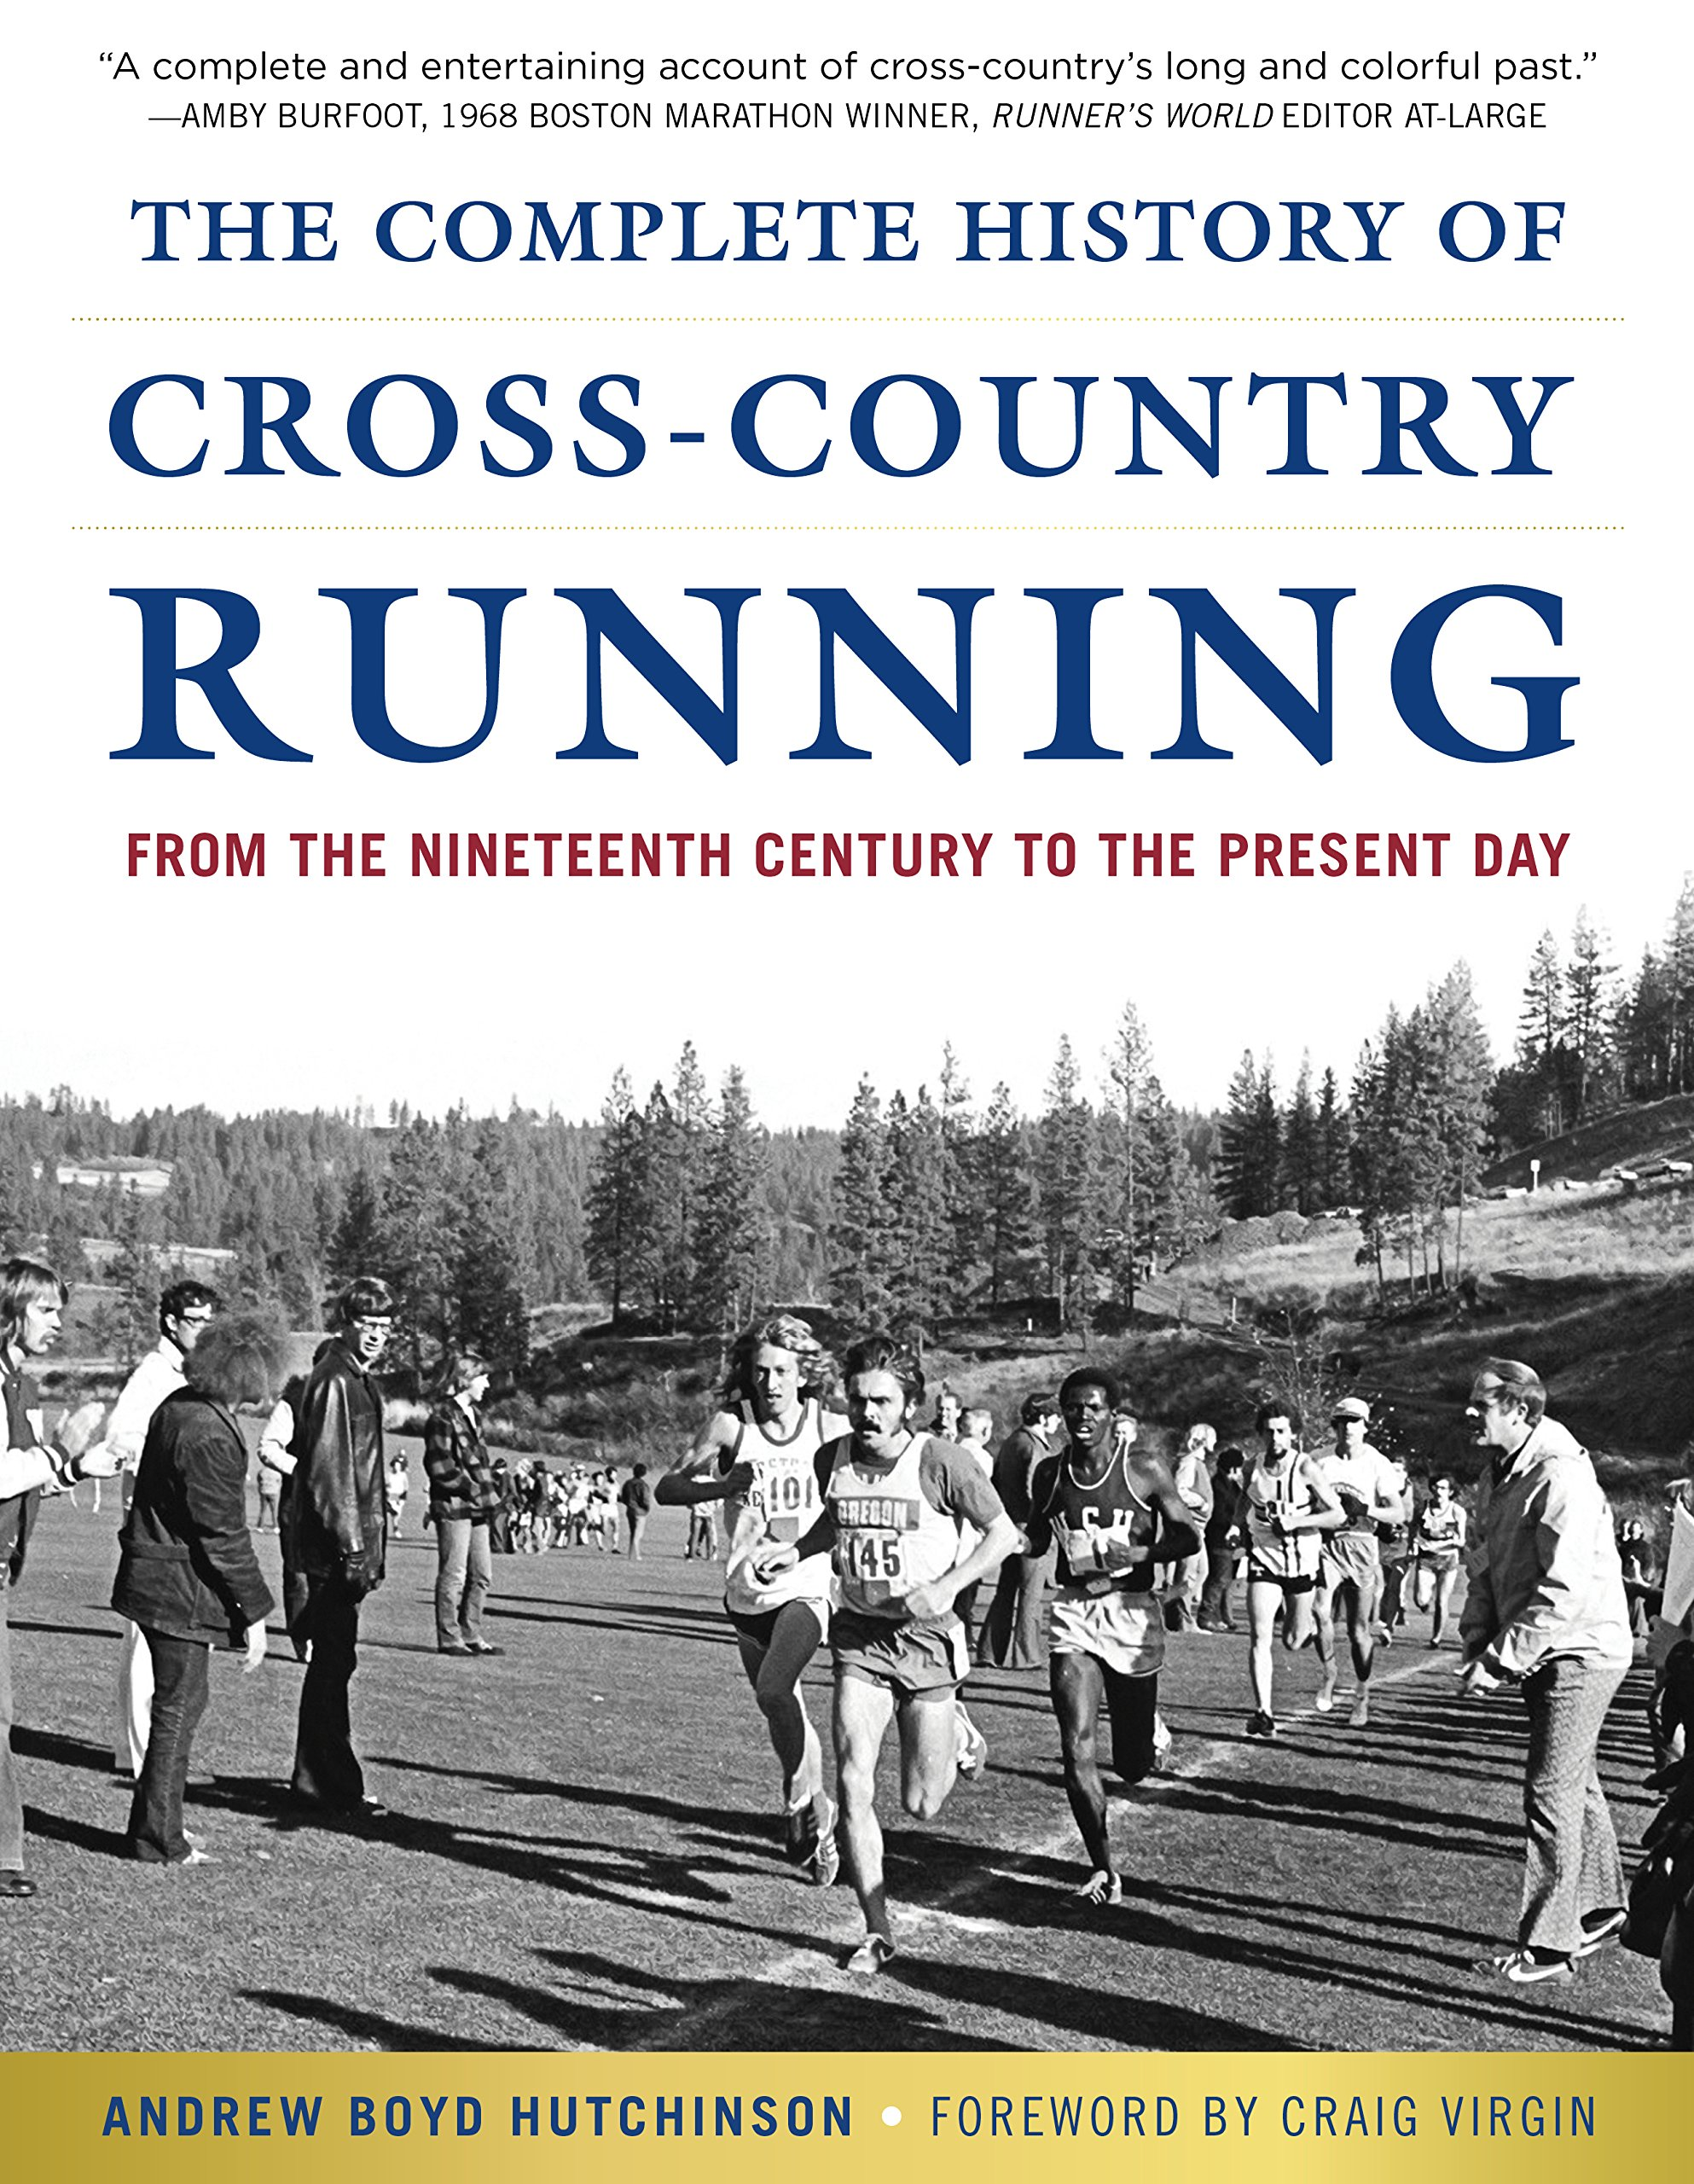 The Complete History of Cross-Country Running: From the Nineteenth Century  to the Present Day: Andrew Boyd Hutchinson, Craig Virgin: 9781631440762: ...